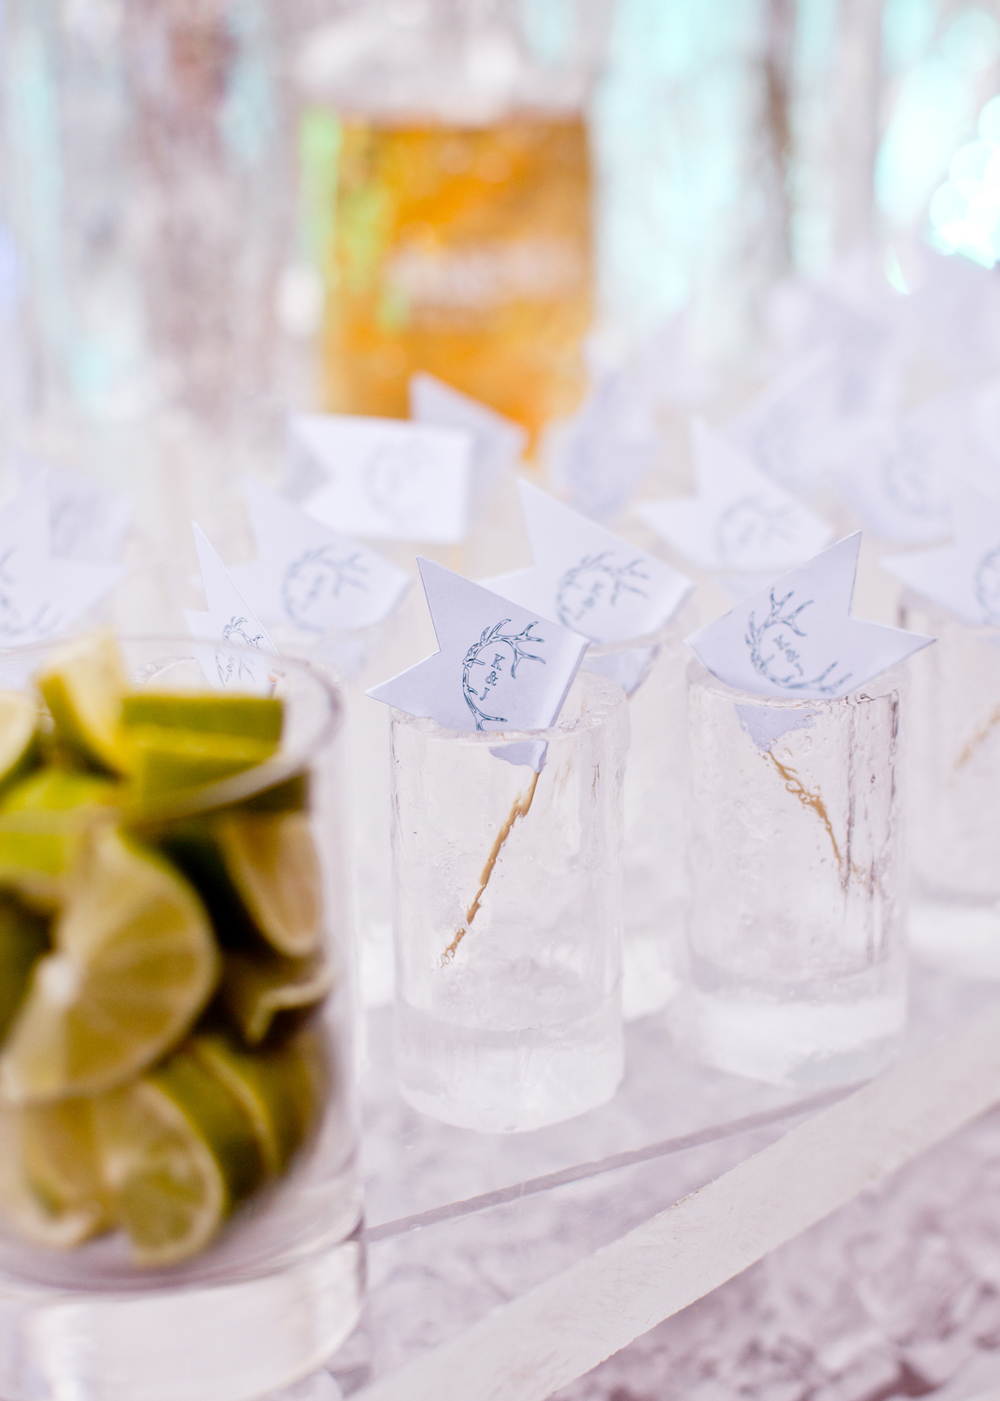 Ice shot glasses with monogrammed toothpick flags